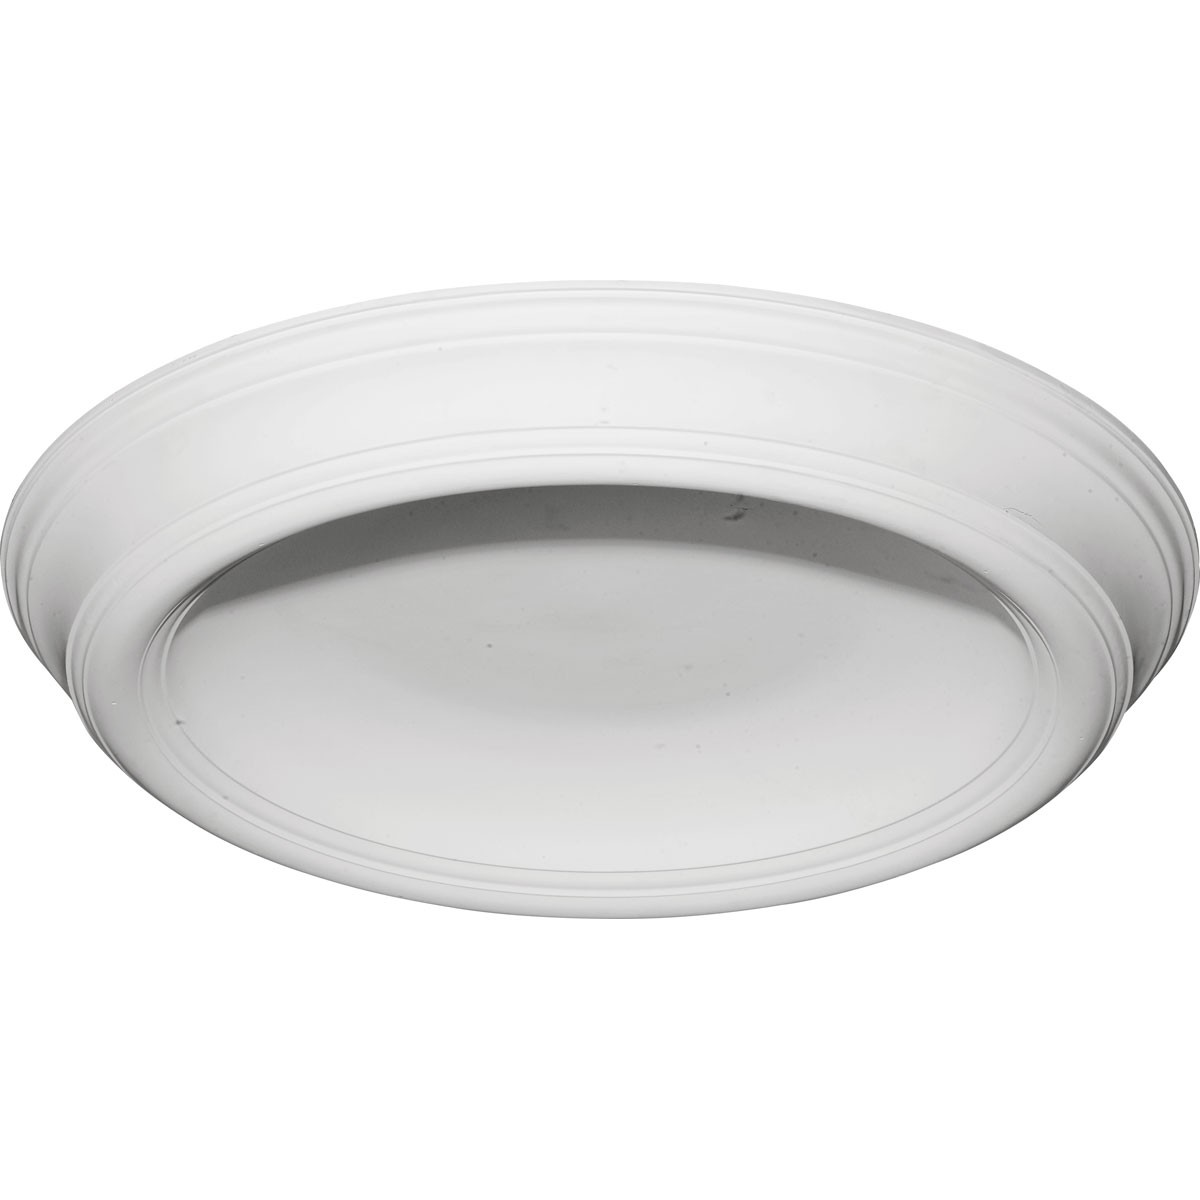 """EM-DOME37TR - 37 3/8""""OD x 26 1/2""""ID x 4""""D Traditional Smooth Surface Mount Ceiling Dome"""